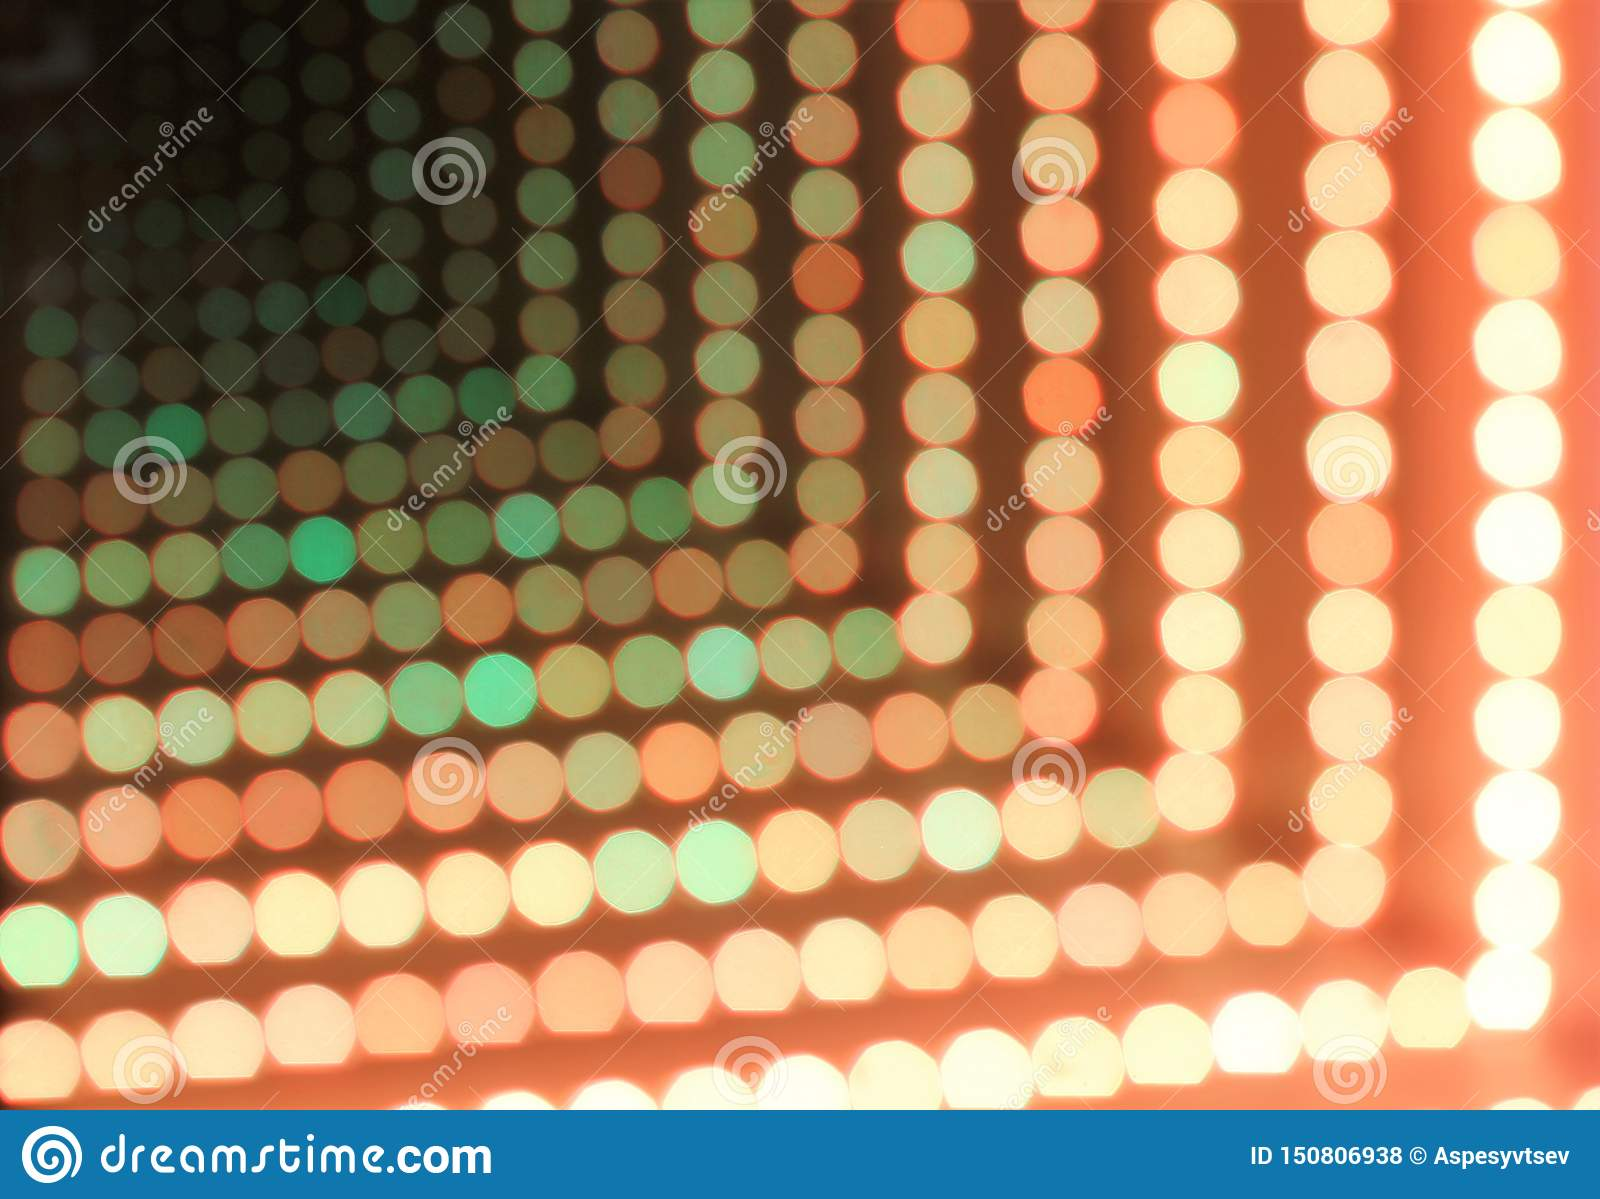 Abstract background of glowing dotted neon lights, perspective view